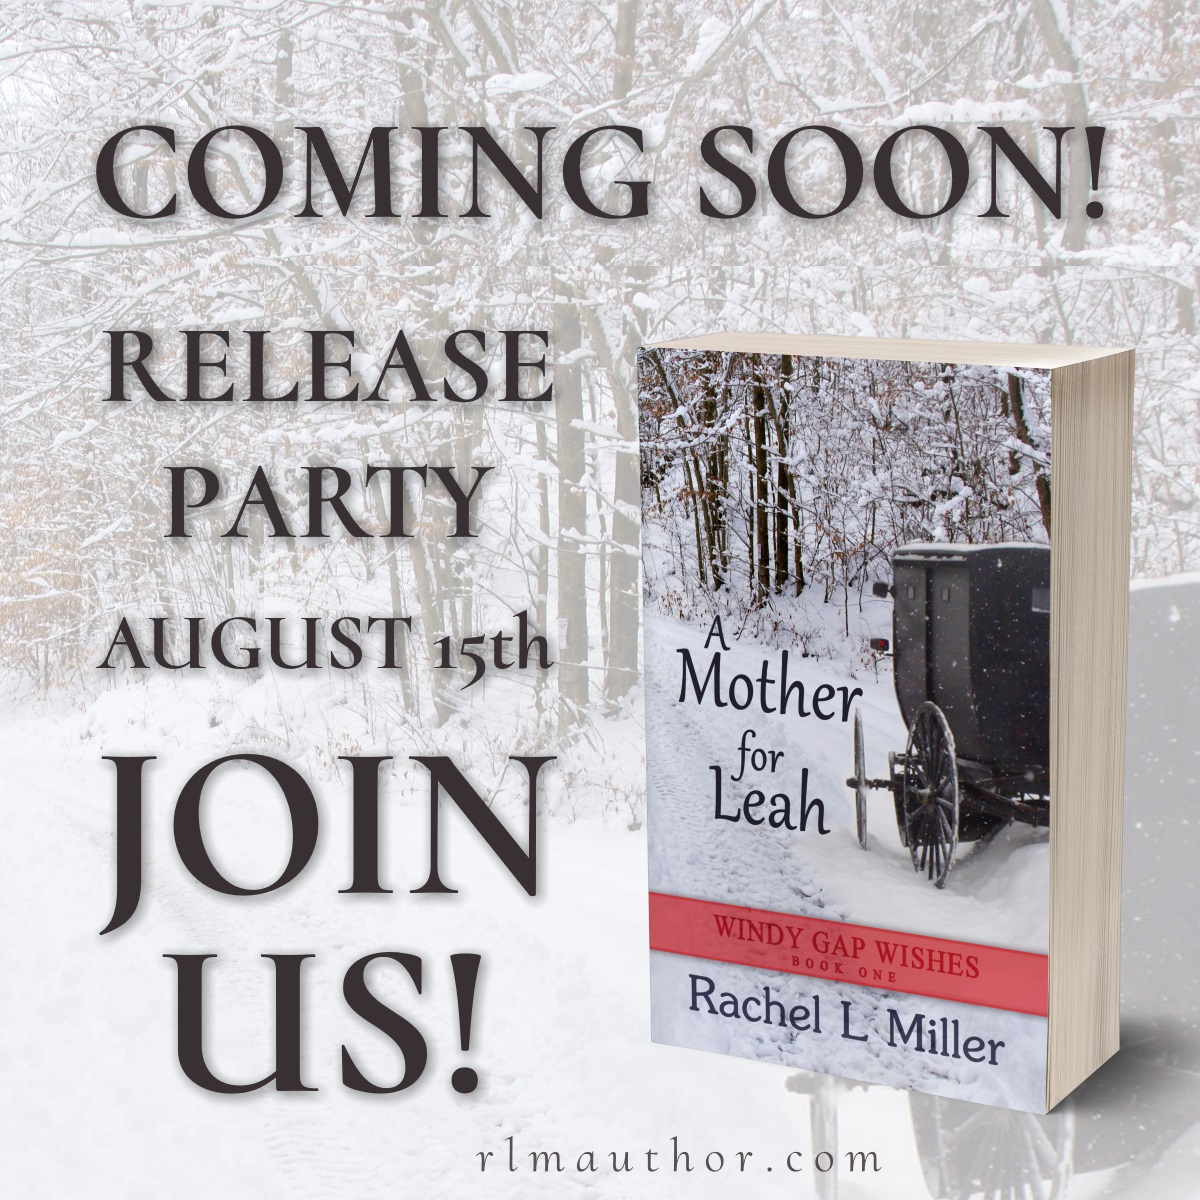 The Party Starts August 15th!